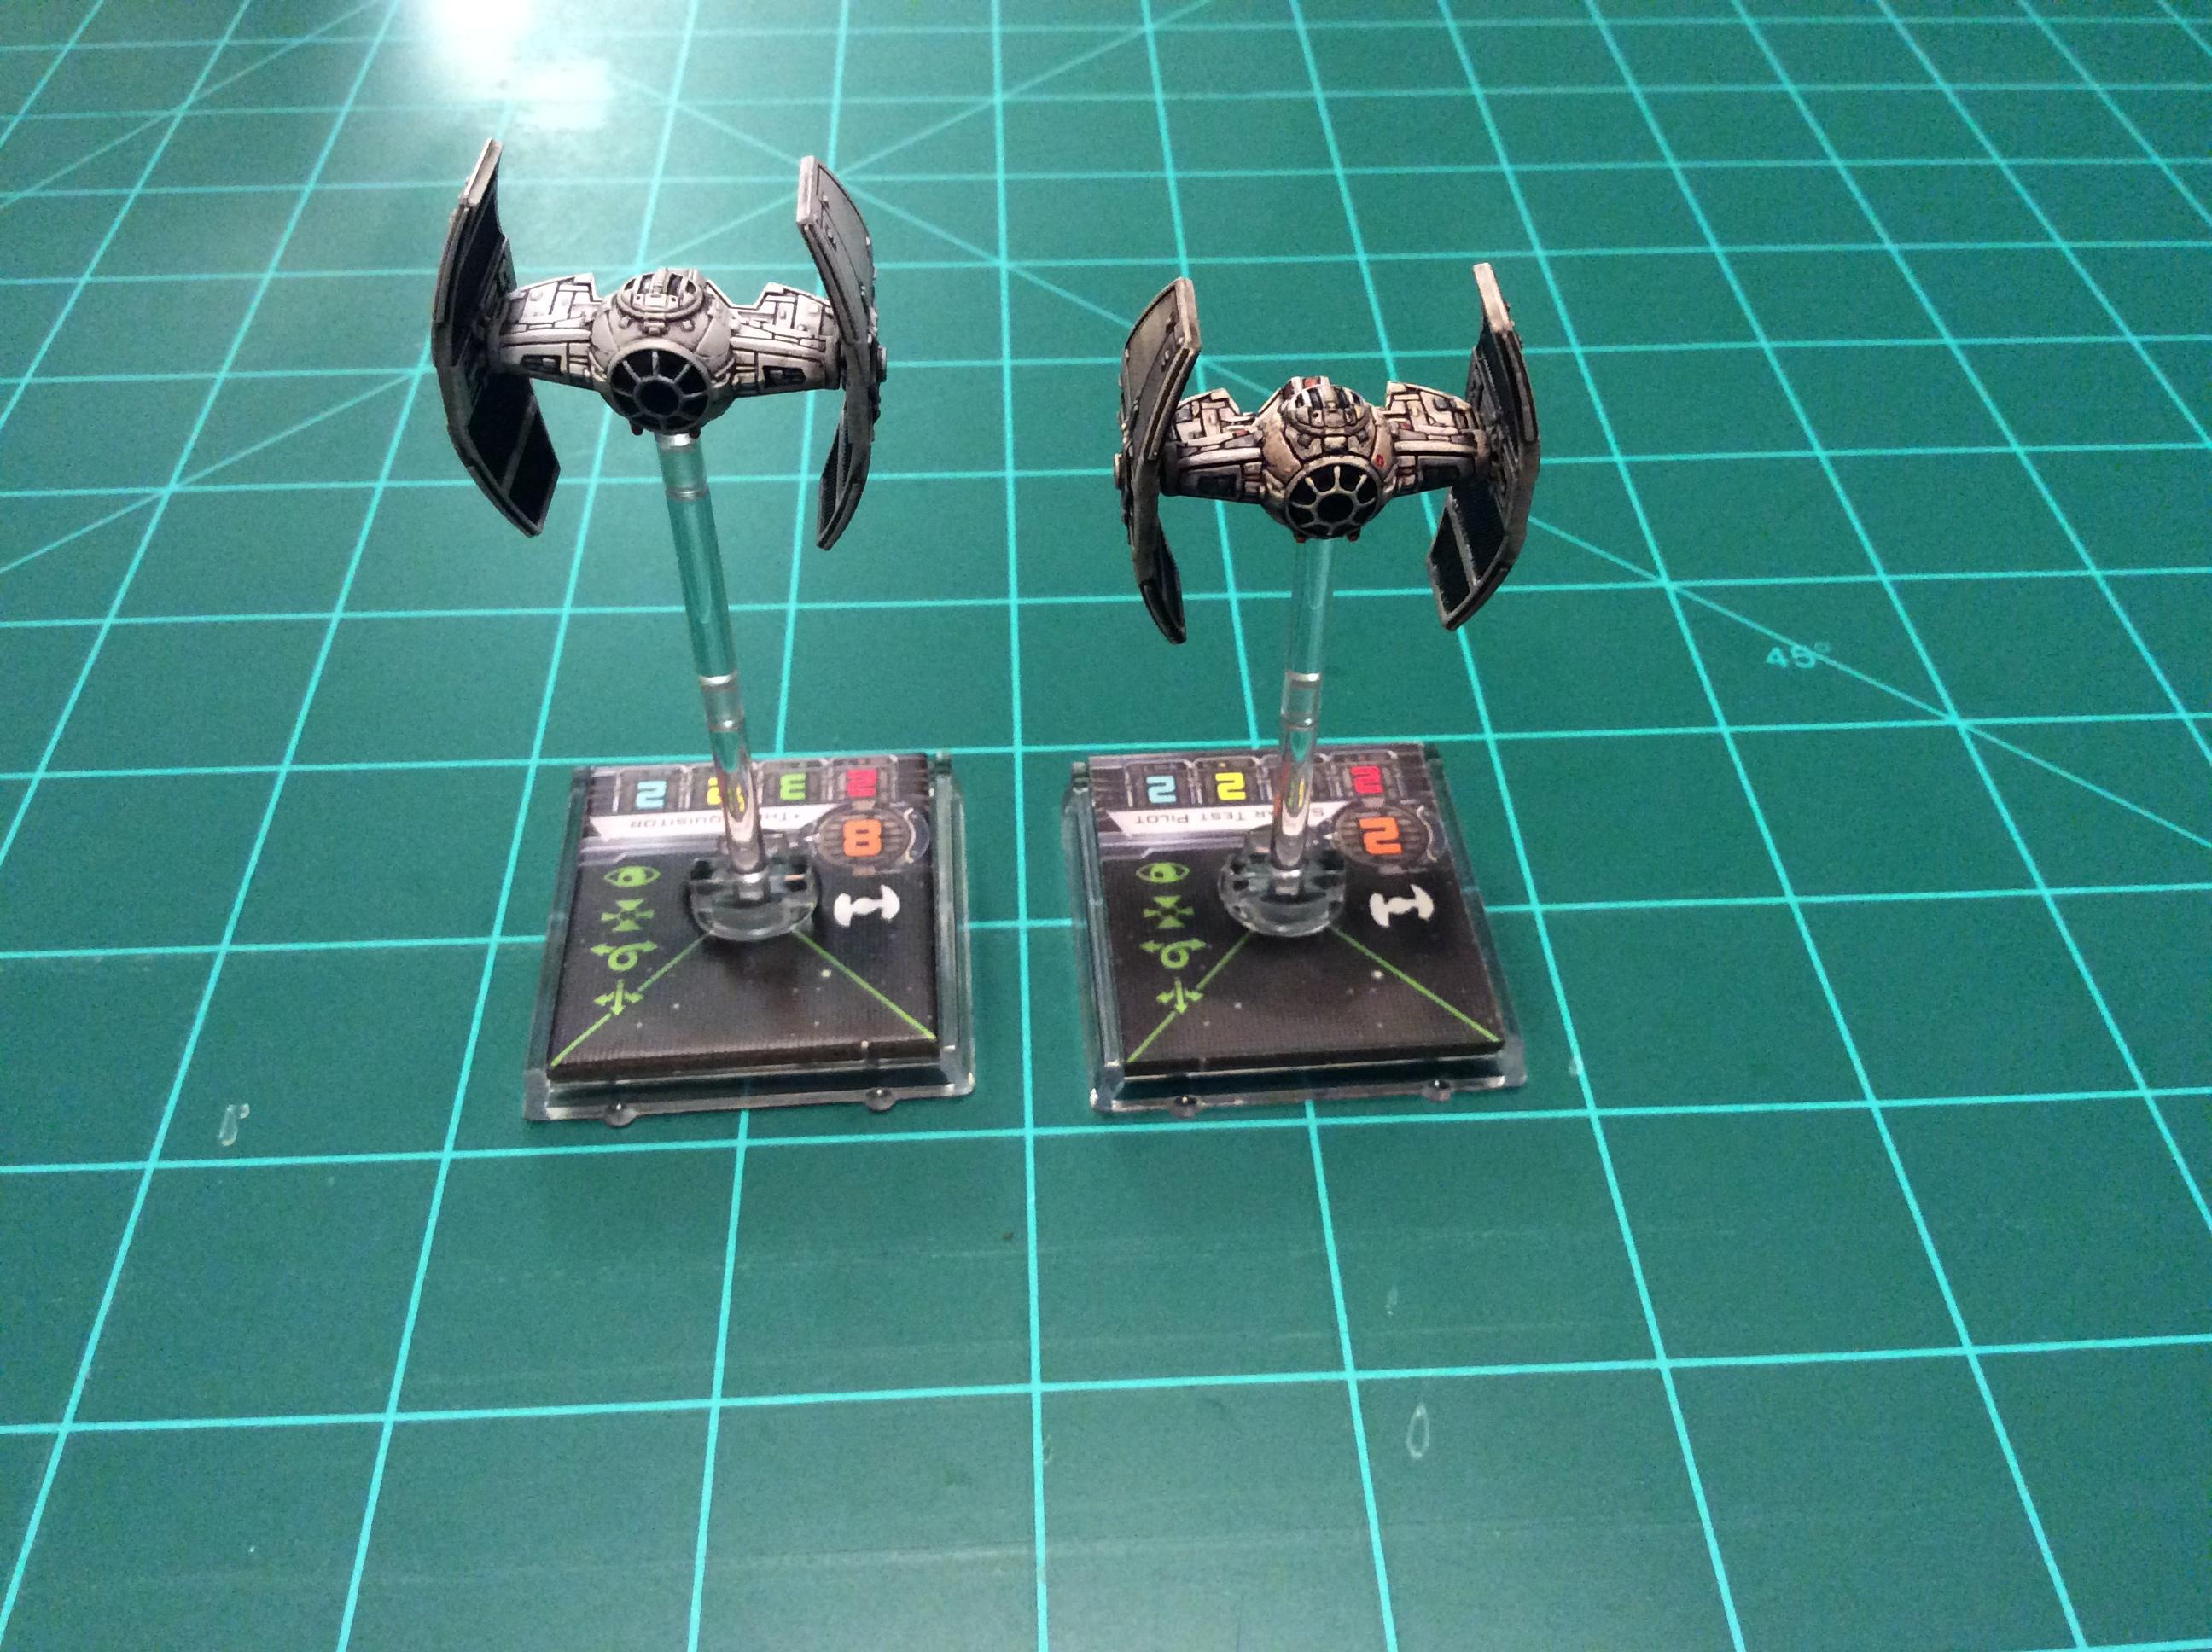 1/270 Scale, Star Wars, Tie Advanced Prototype, X-wing Miniatures Game